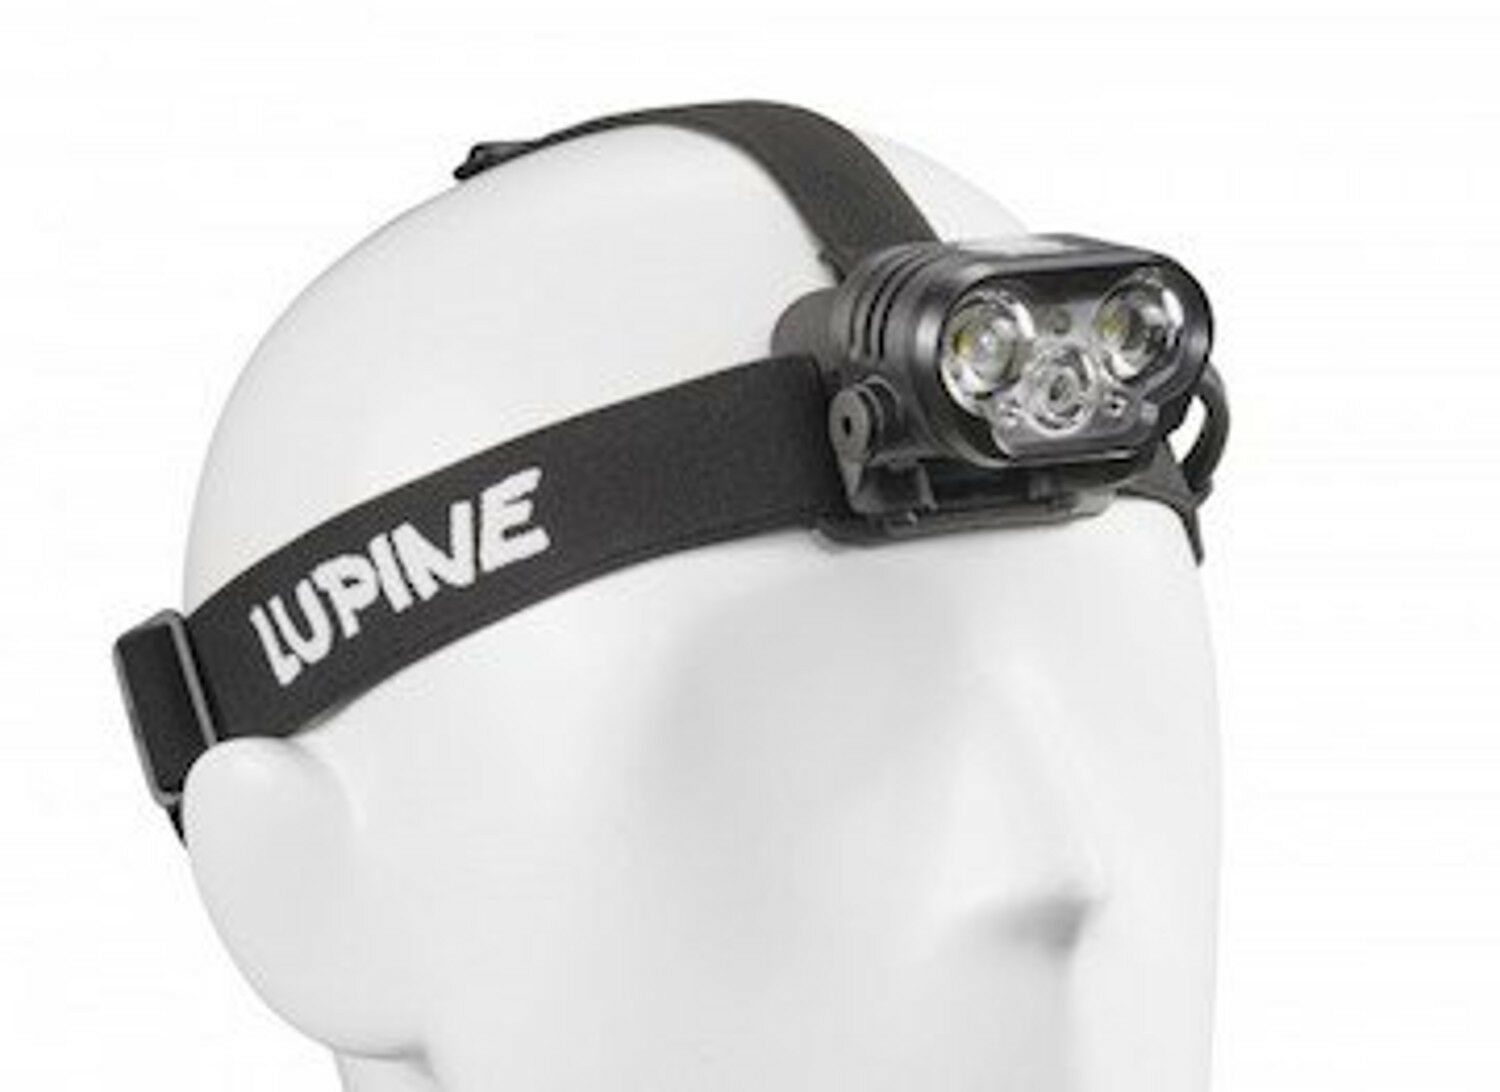 Lupine Lighting Systems Blika RX7 SmartCore Headlamp System  2100 Lumens NEW  here has the latest